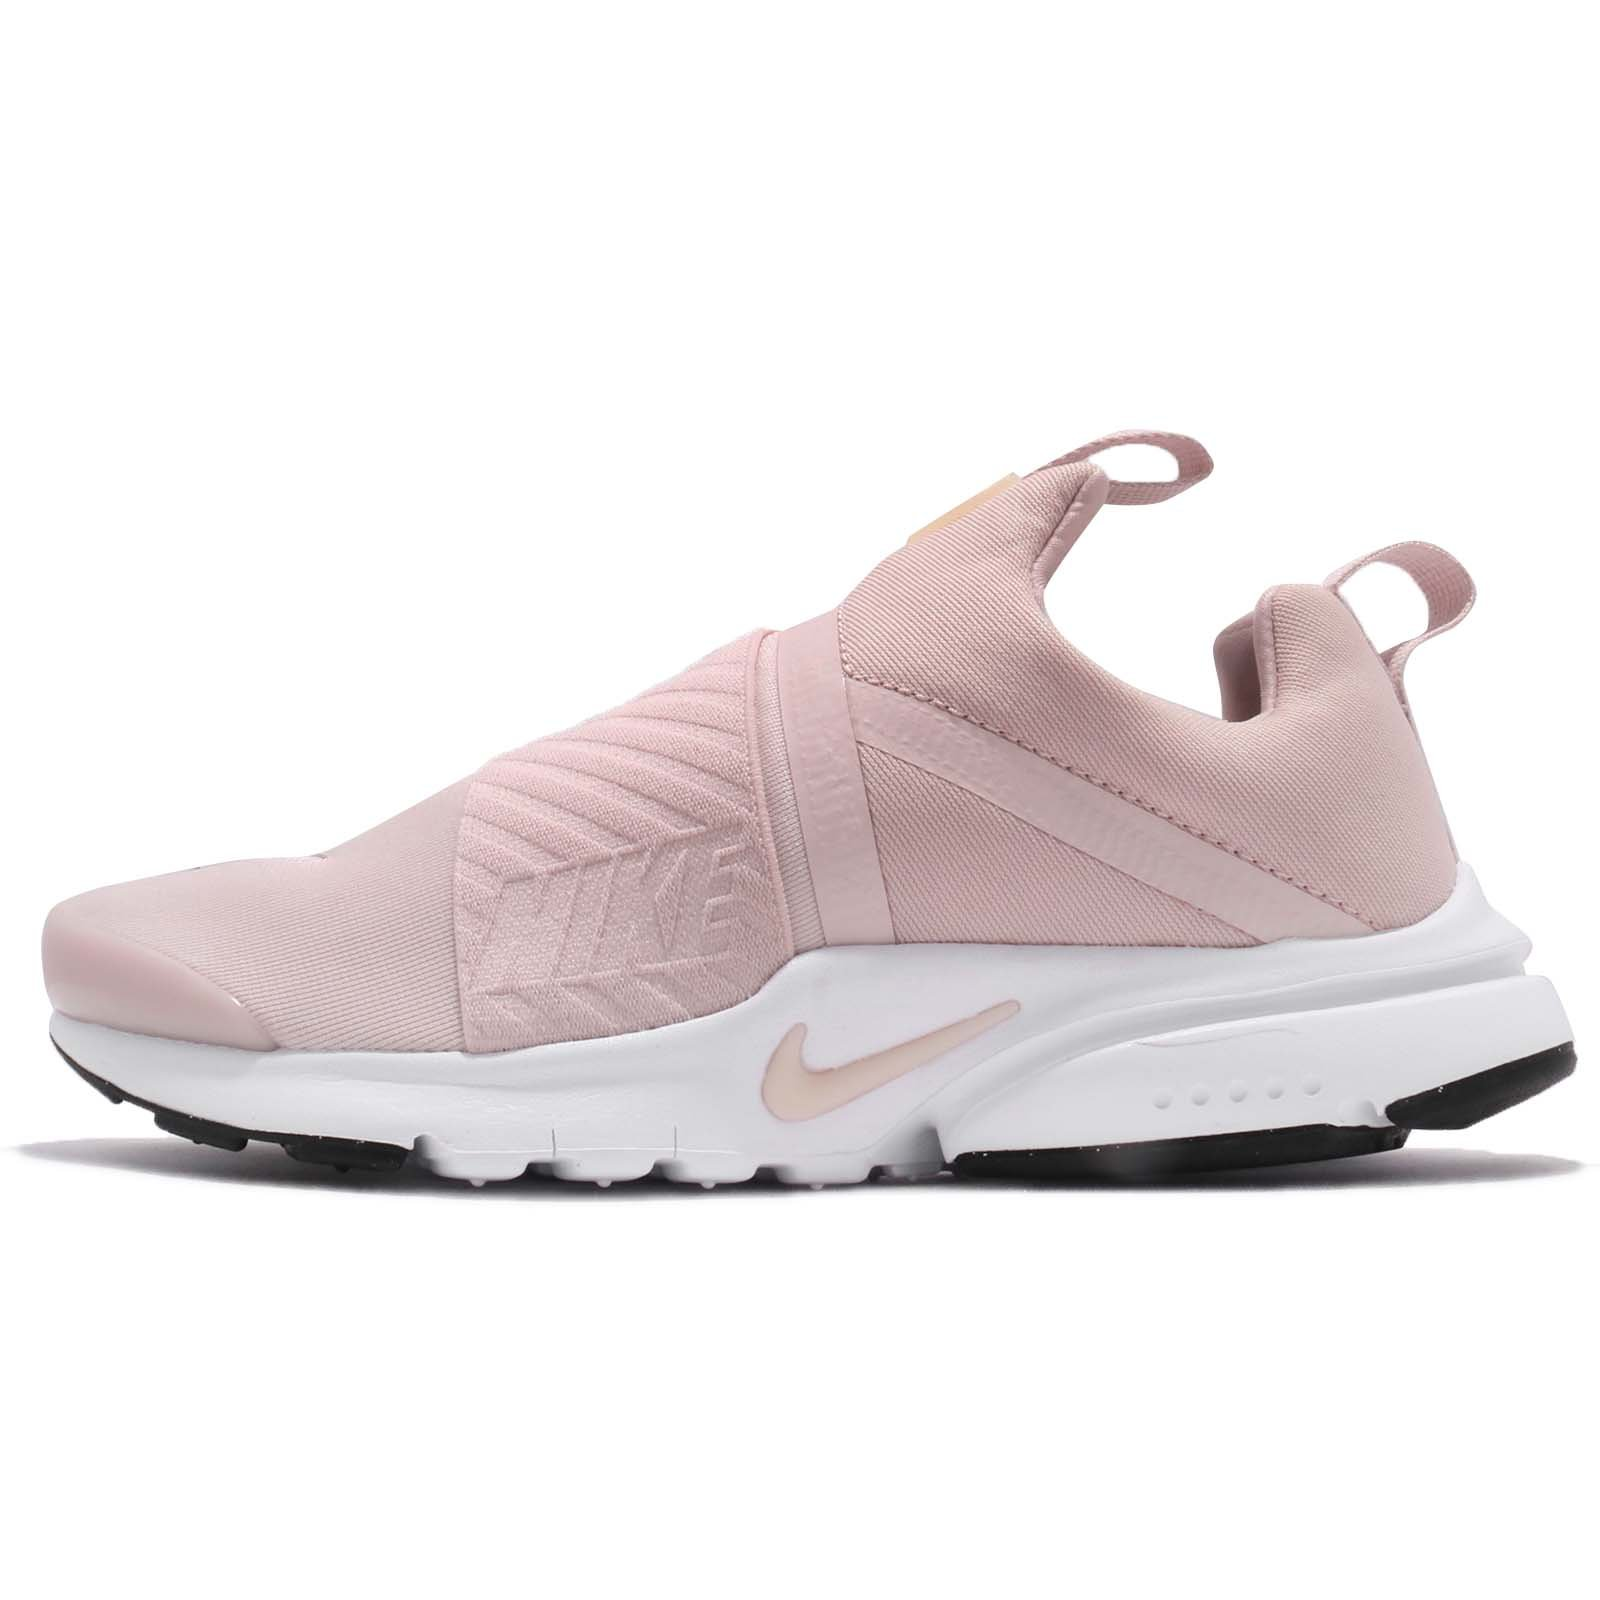 NIKE Kid's Presto Extreme GS, Barely Rose/Barely Rose-White-Black Size US 7 by NIKE